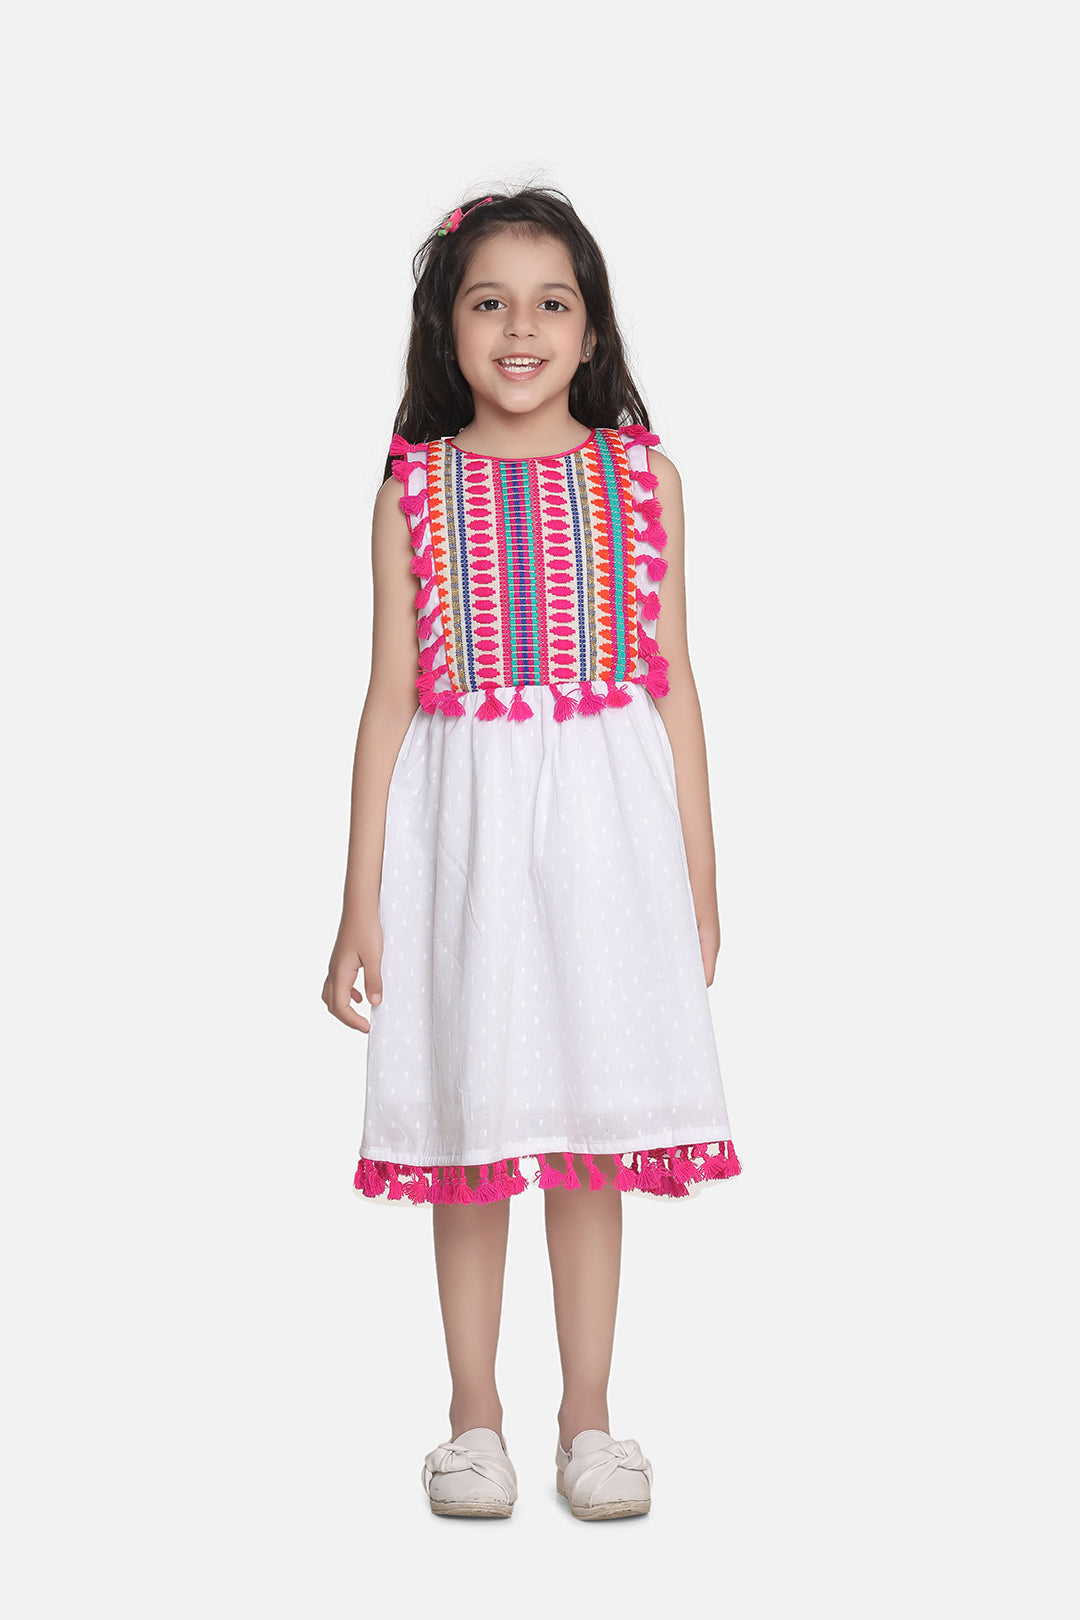 Bohemian Style Cotton Dress-White and Pink